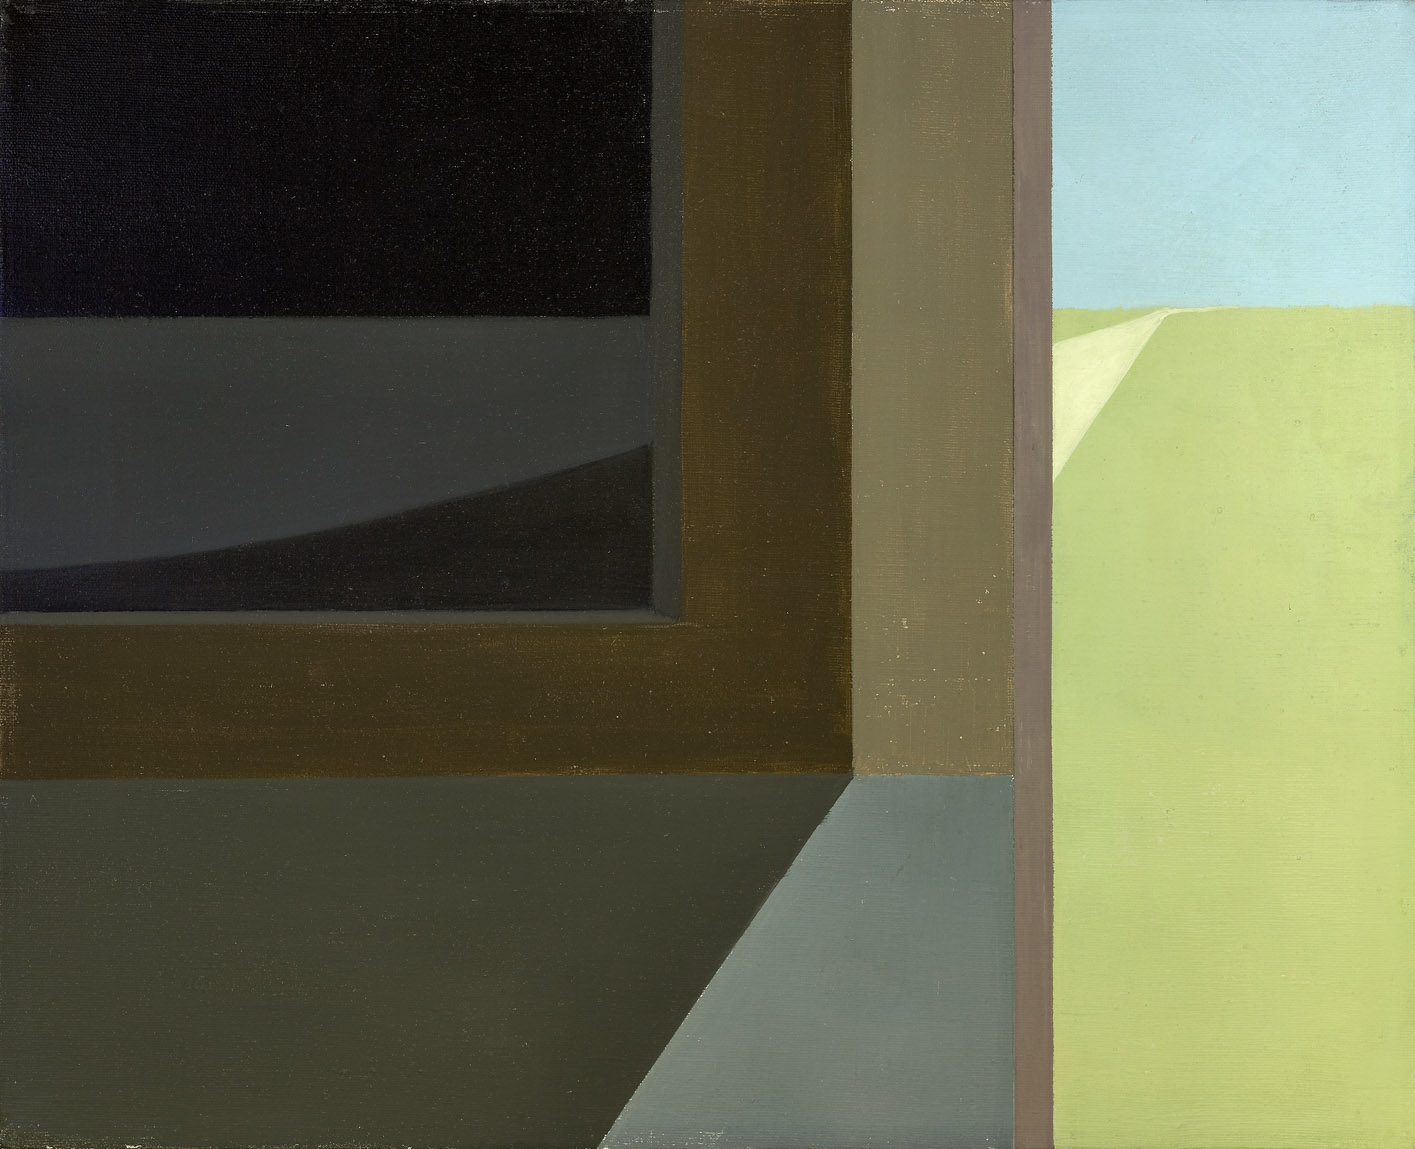 Untitled , 1960  acrylic on canvas 16 x 20 inches; 40.6 x 50.8 centimeters